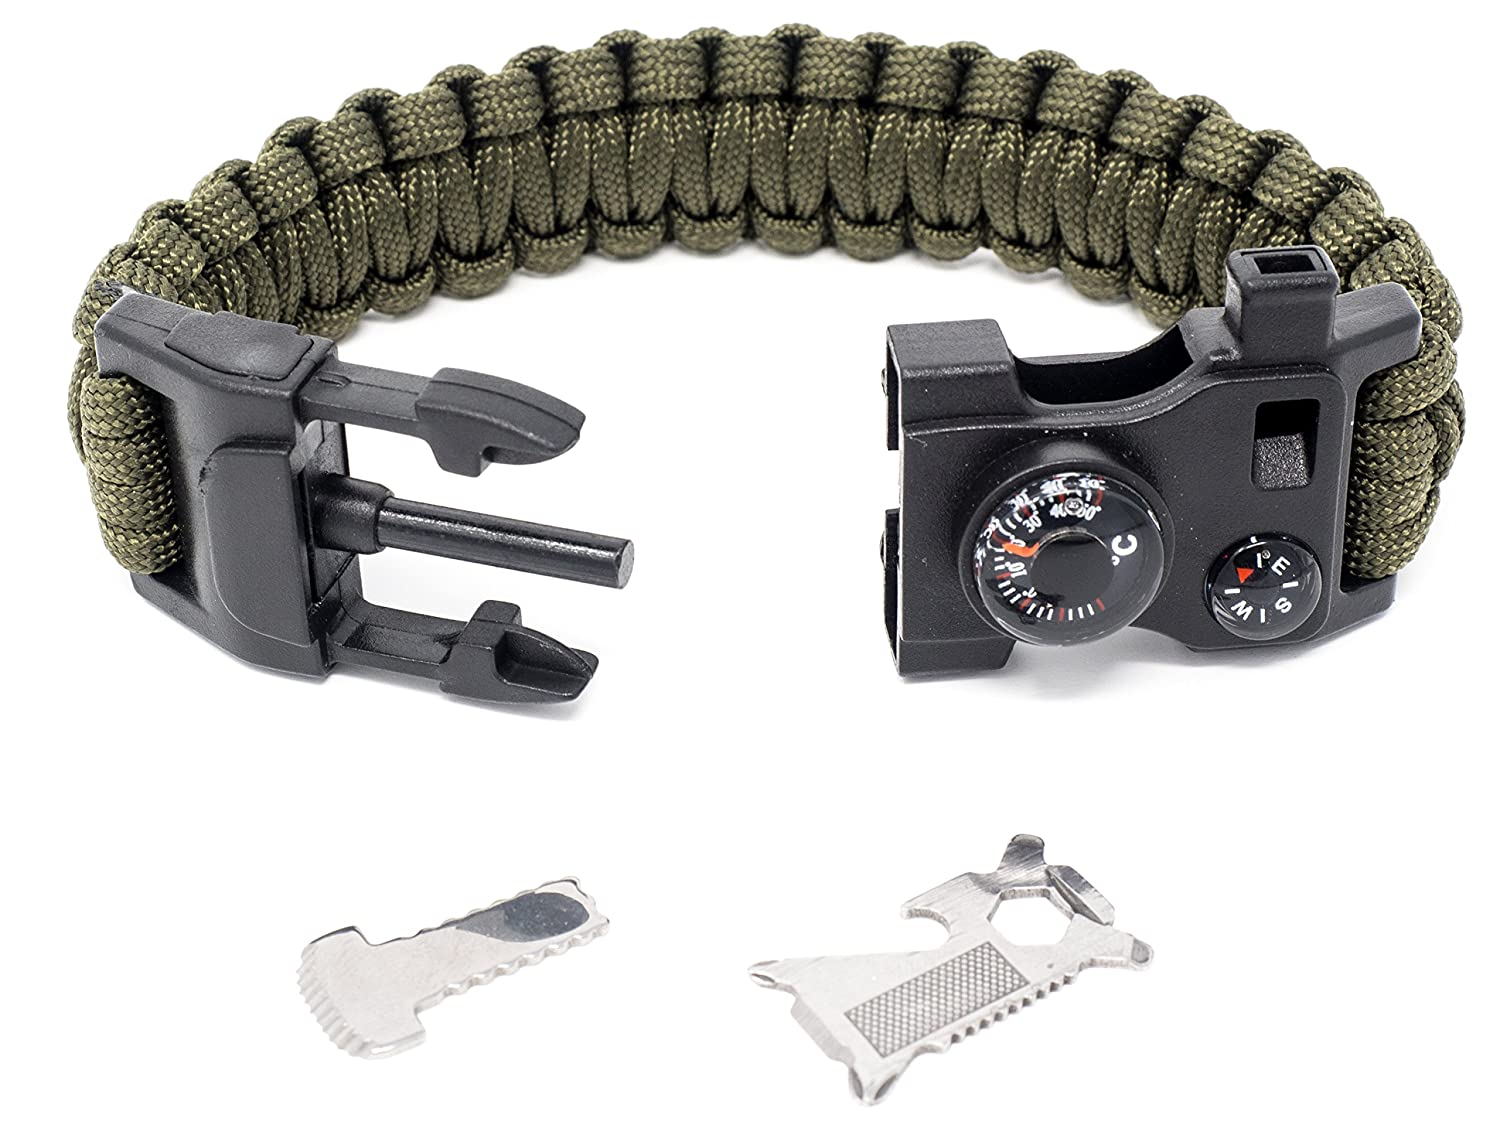 Messer Feuerstein Paracord Pfeife Thermometer Kompass Multitool STEINBOCK7/® Survival Armband 16-in-1